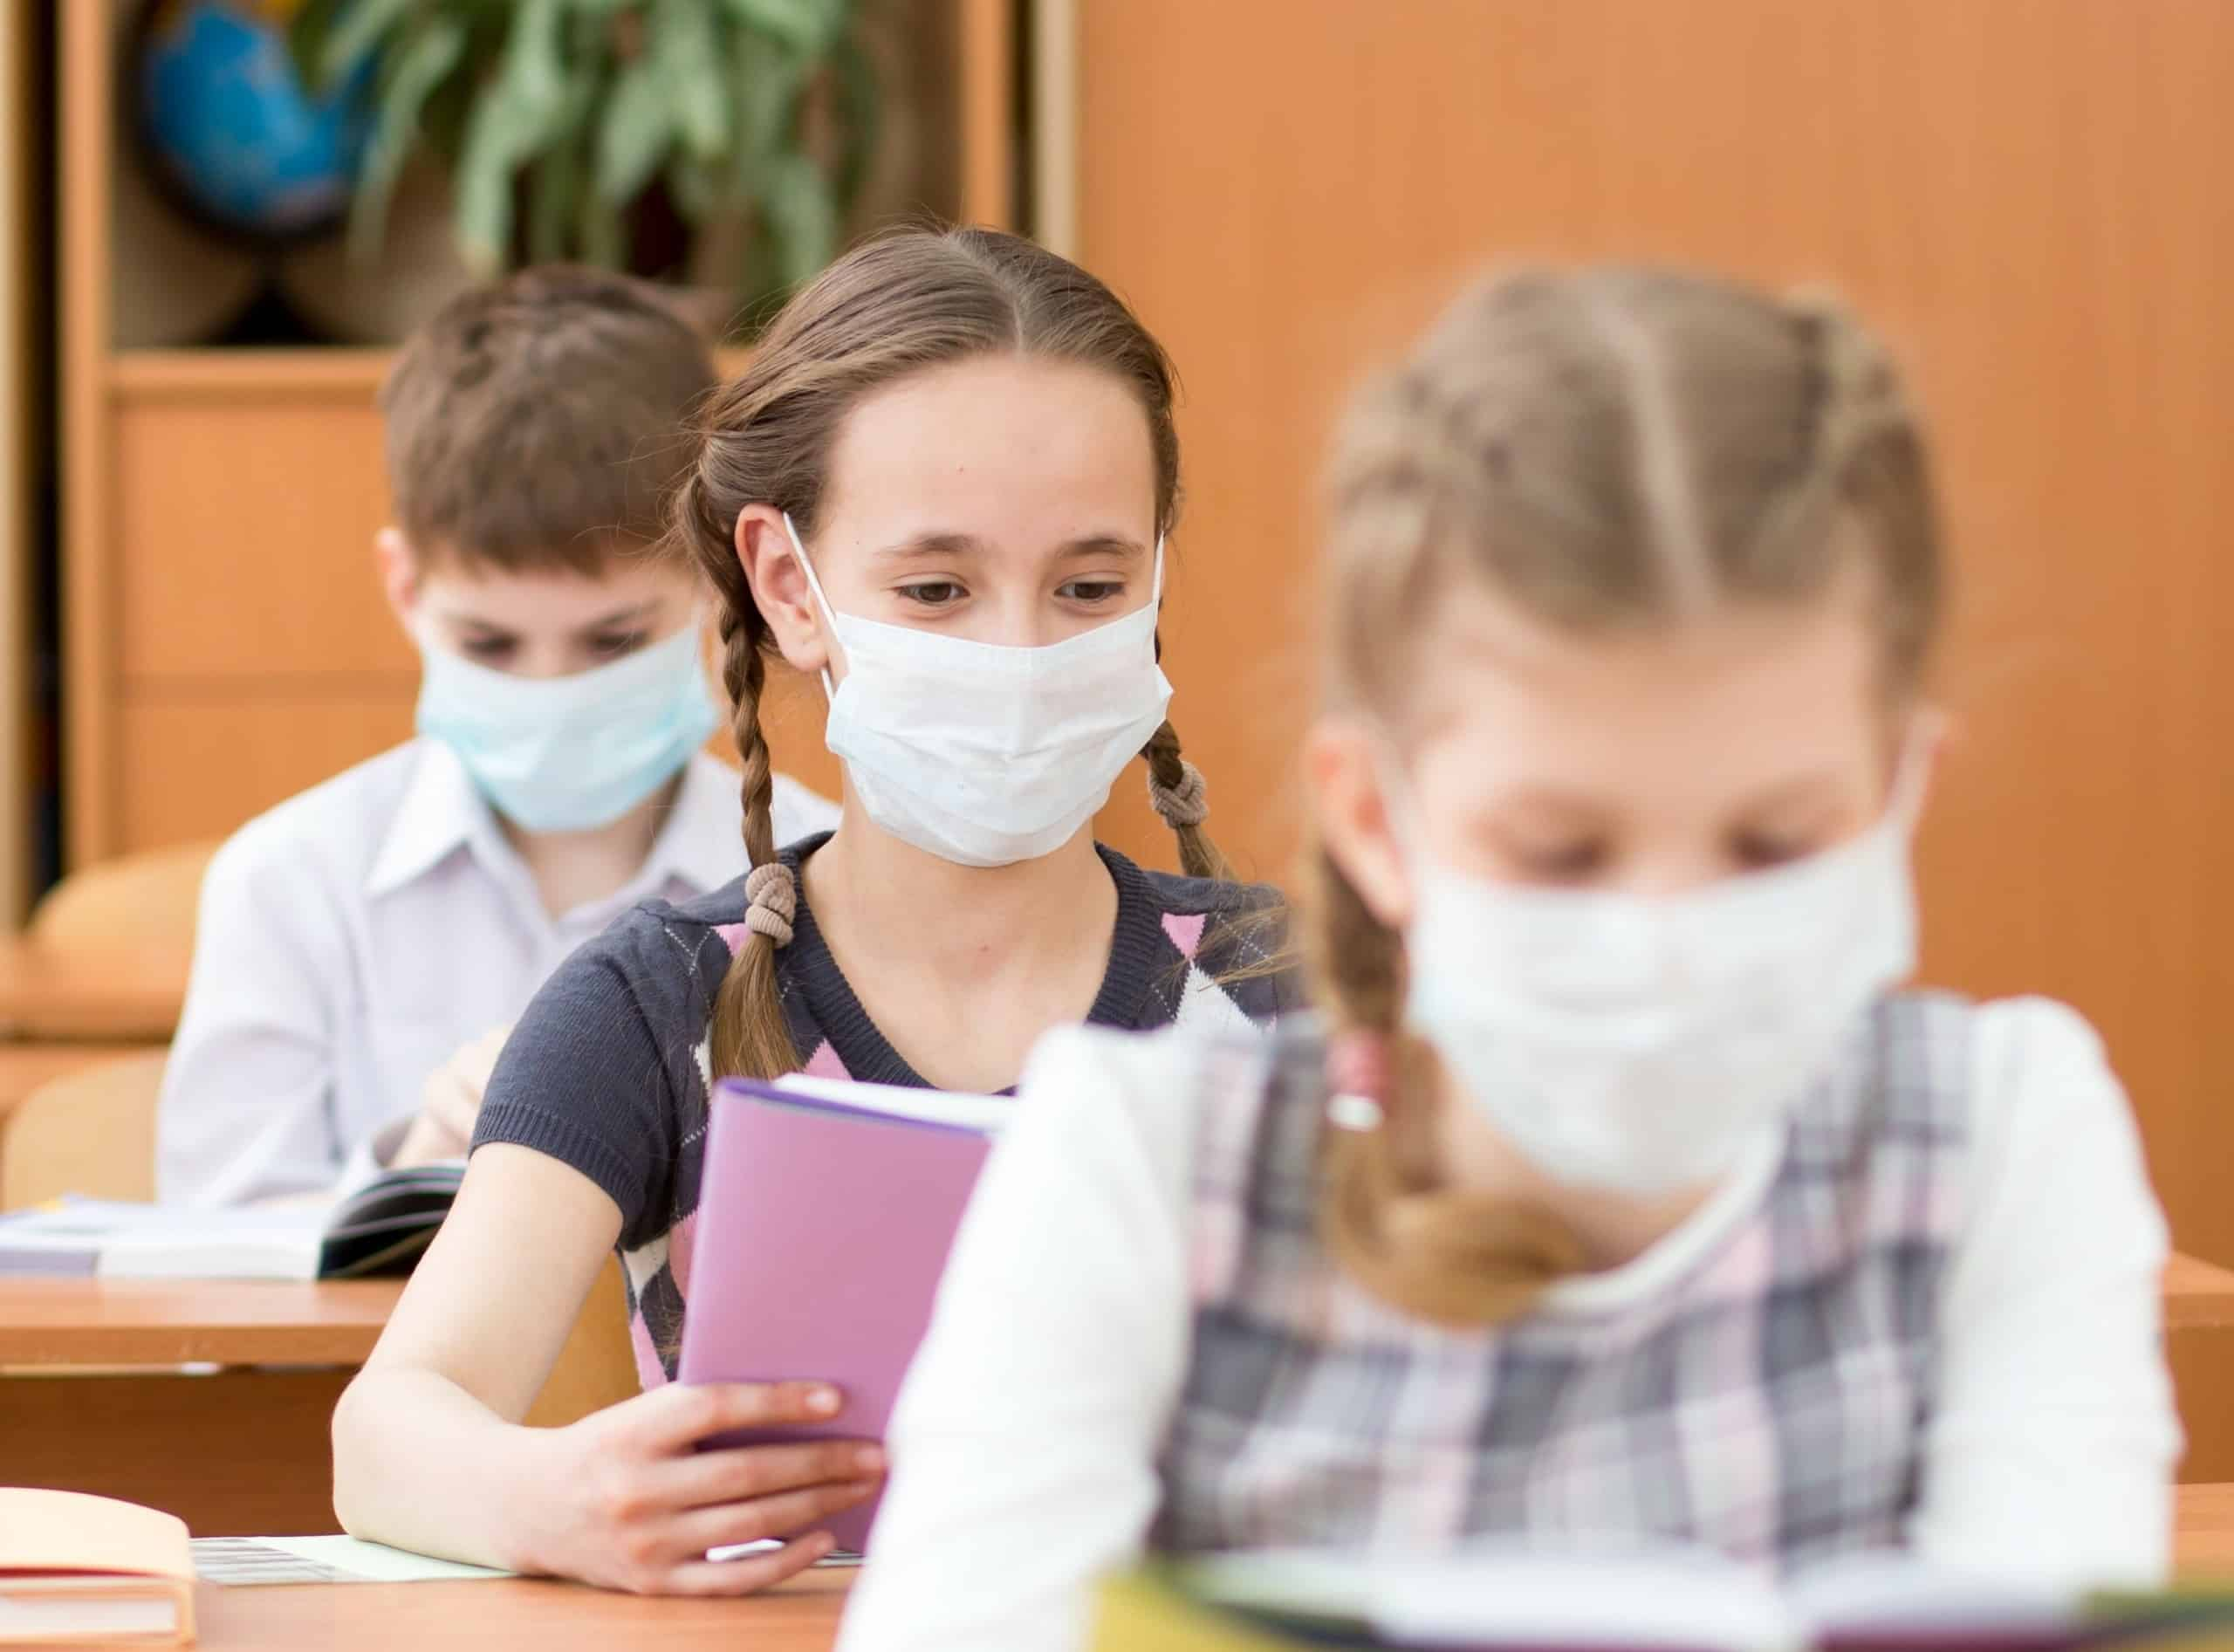 Schoolkids with medicine mask on faces against virus in classroom; keeping reading social while distancing